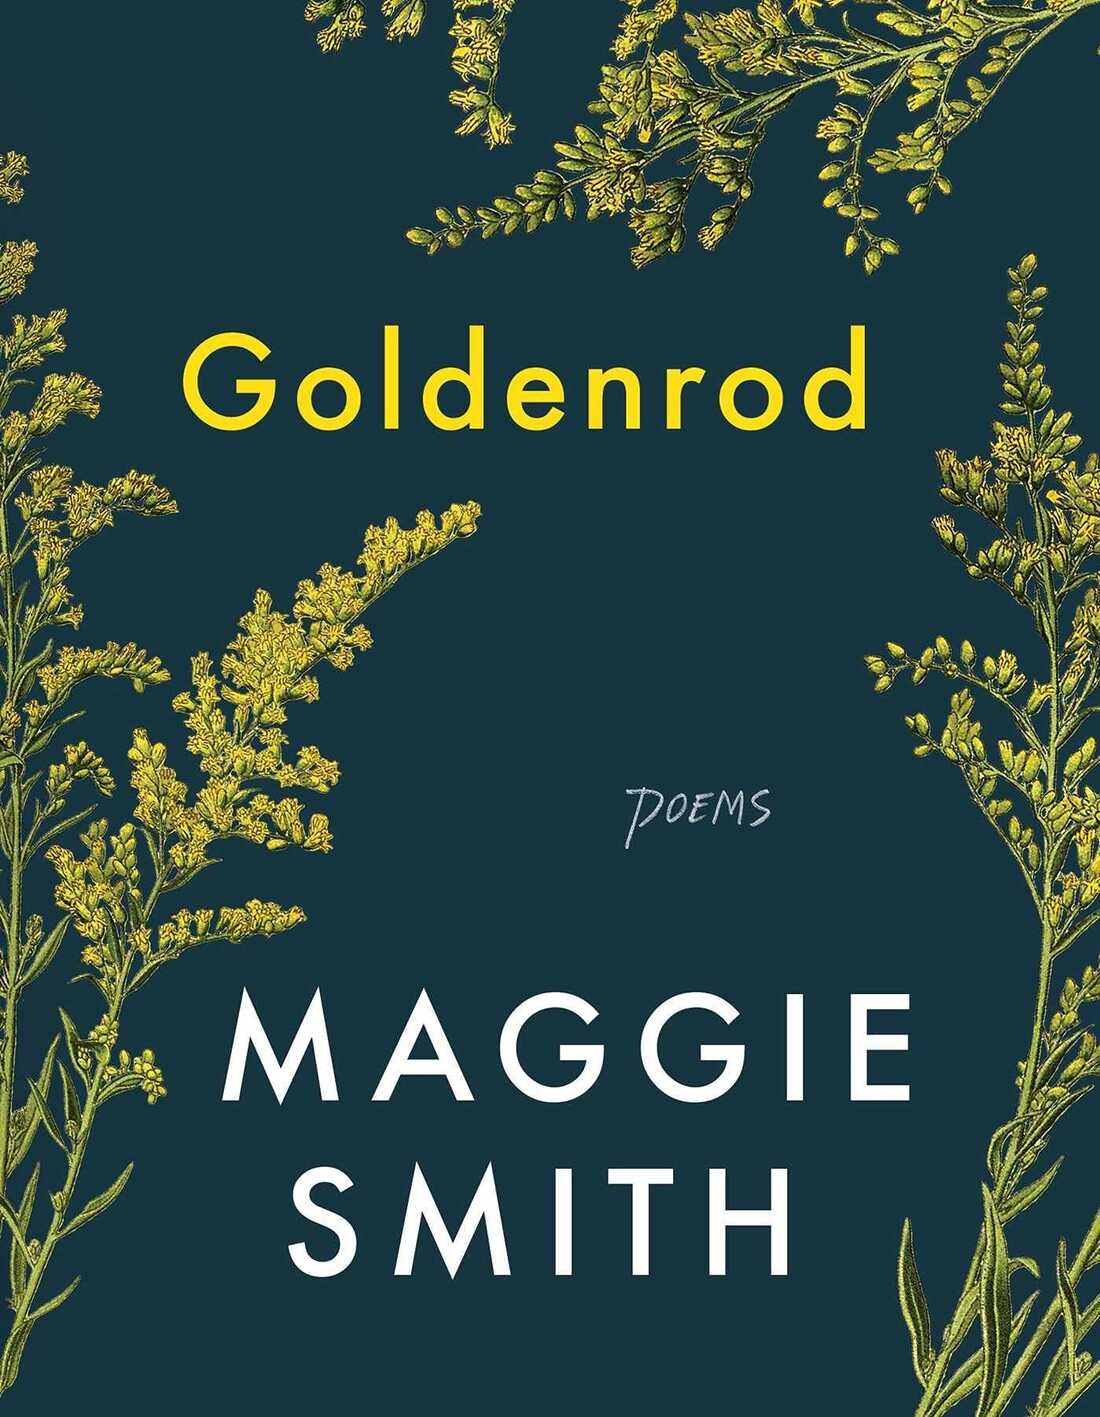 Goldenrod, by Maggie Smith